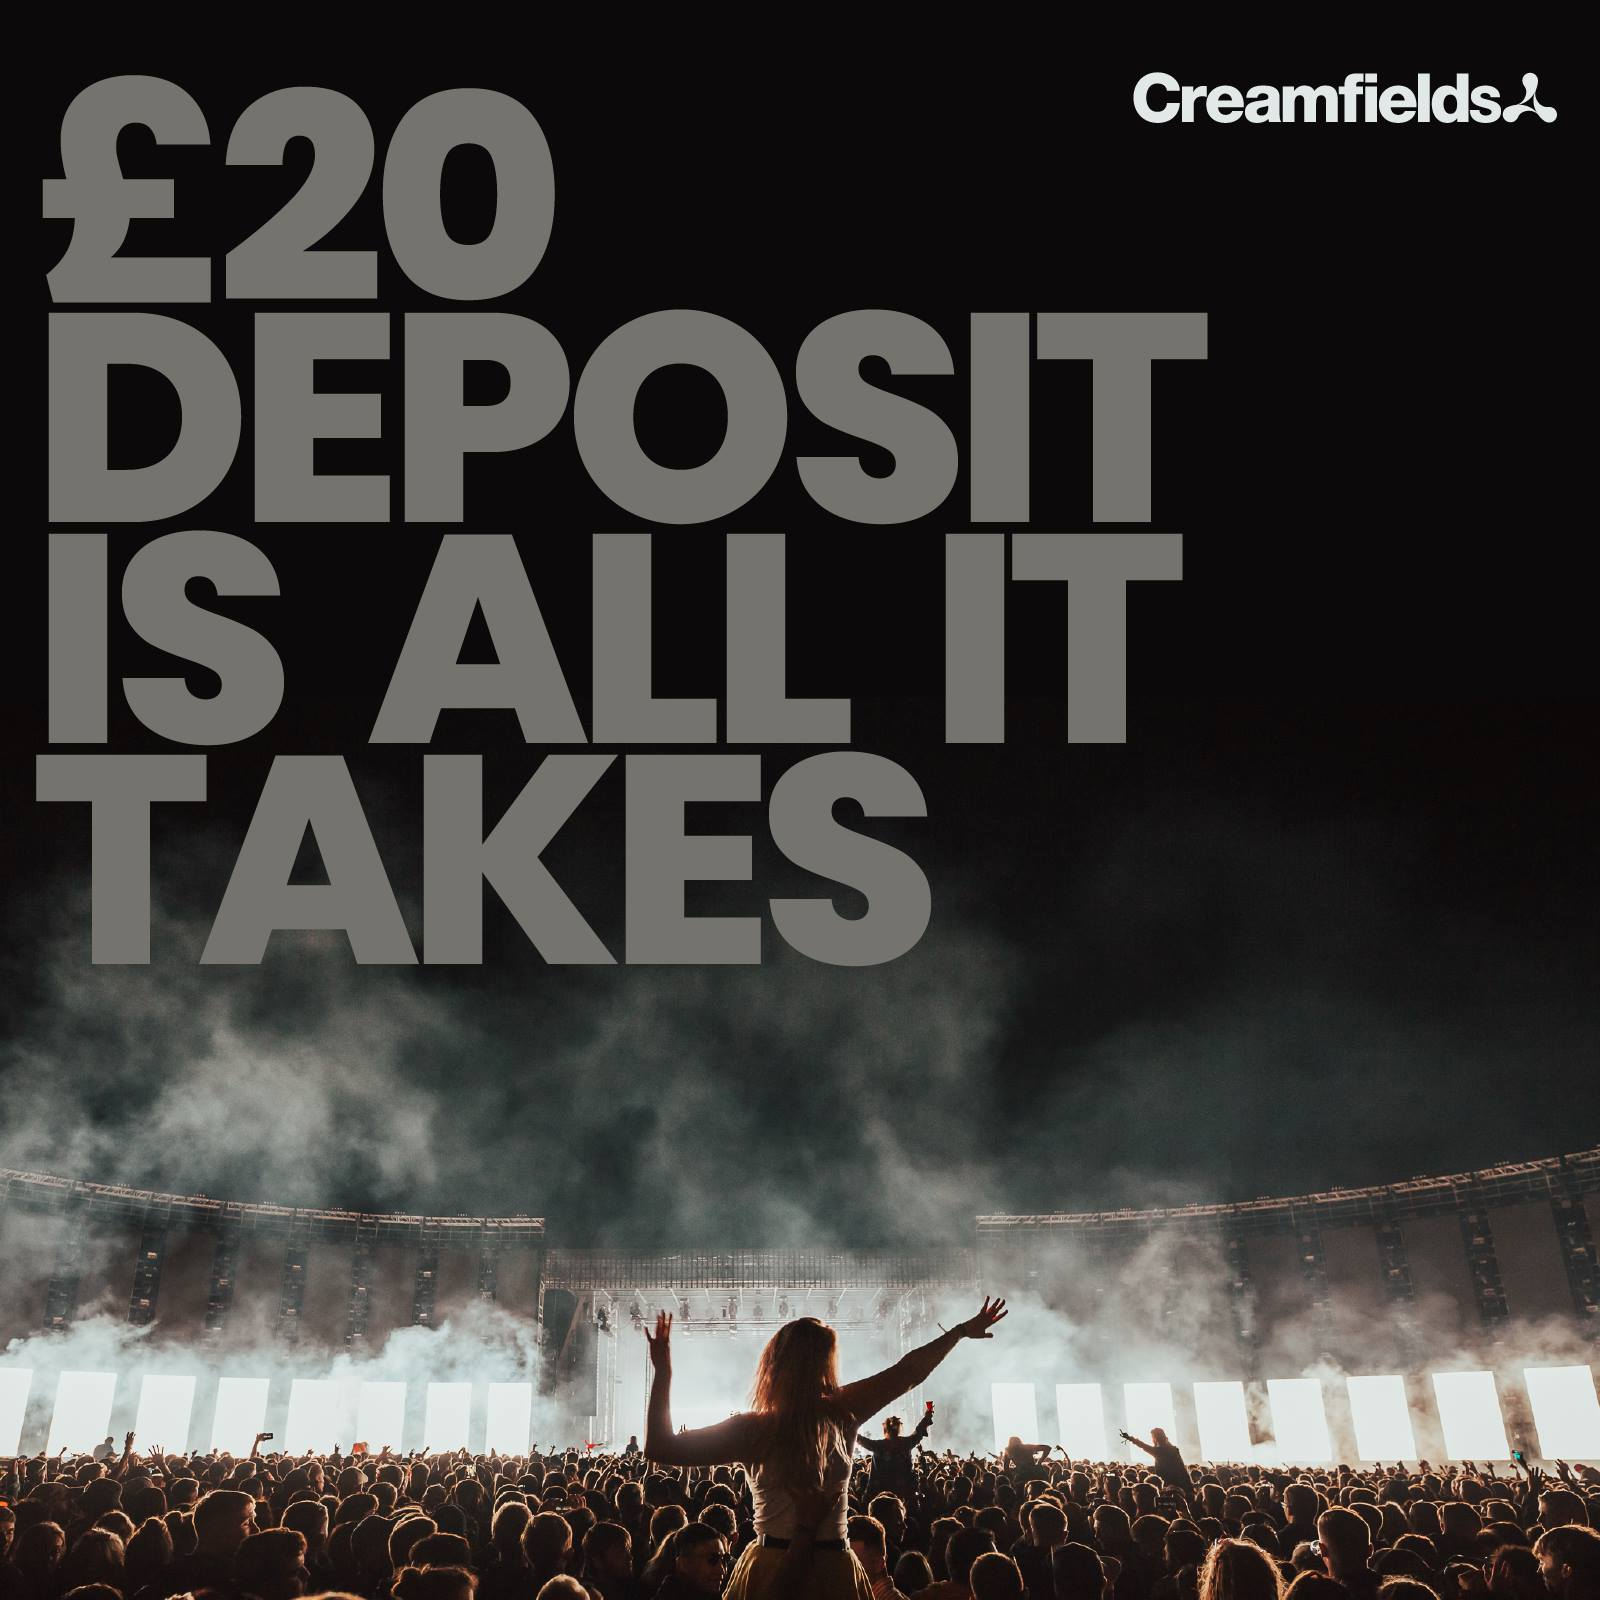 Book #Creamfields2019 now for just a £20 deposit #20IsAllitTakes